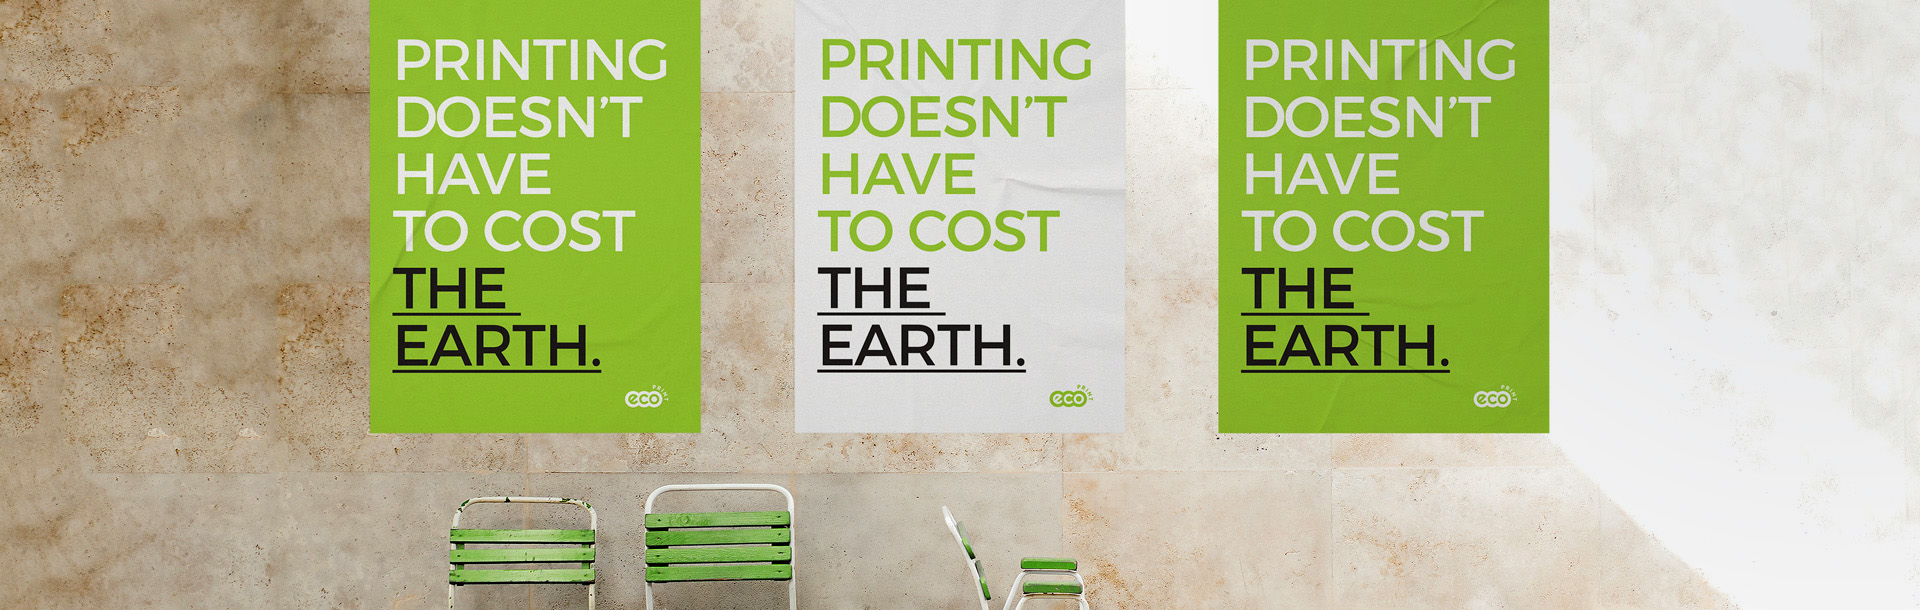 Ecoprint. Printing doesn't have to cost the Earth